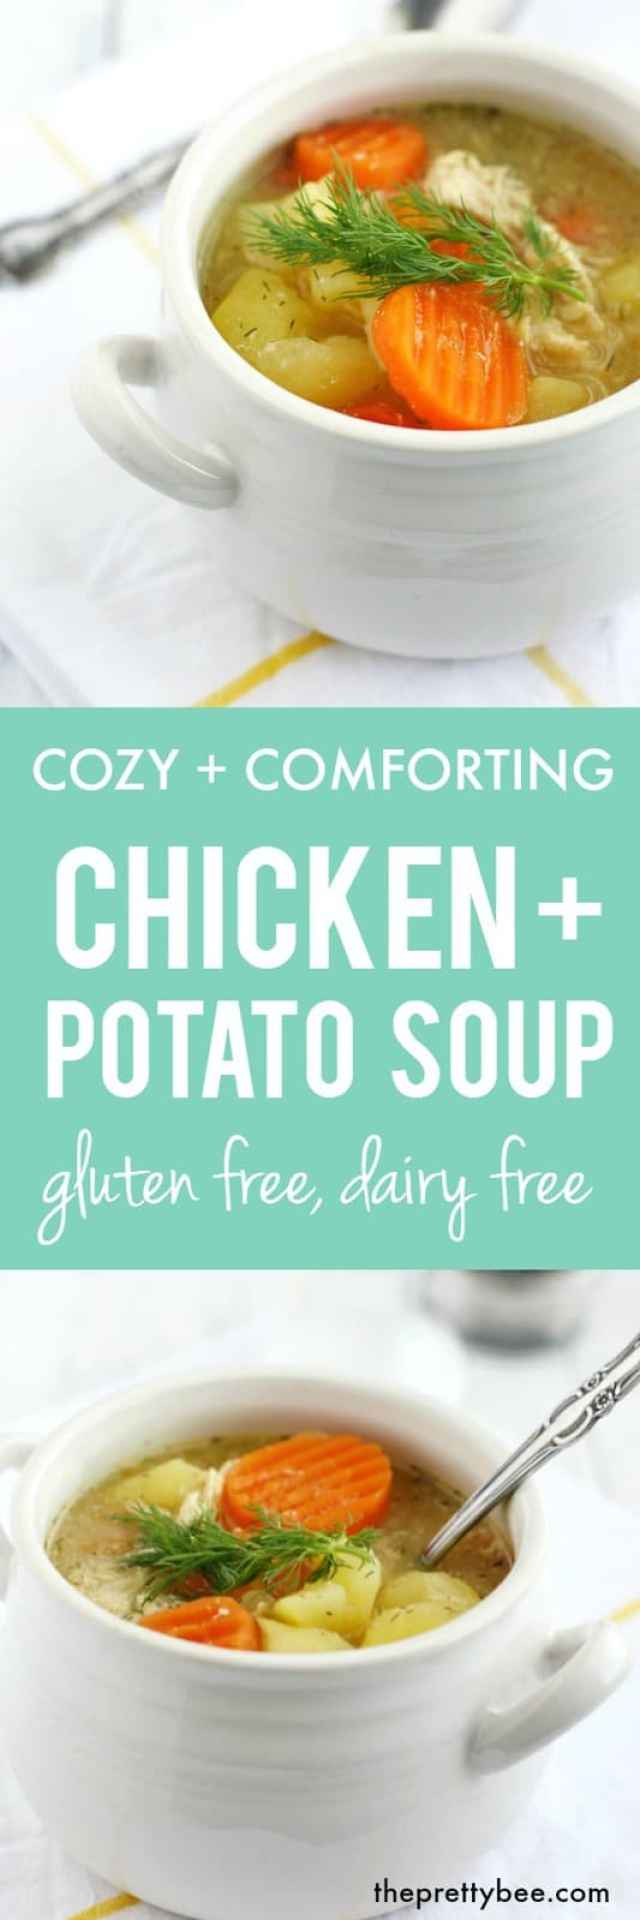 Cozy and delicious chicken potato soup is a hearty meal to serve on a cold day!